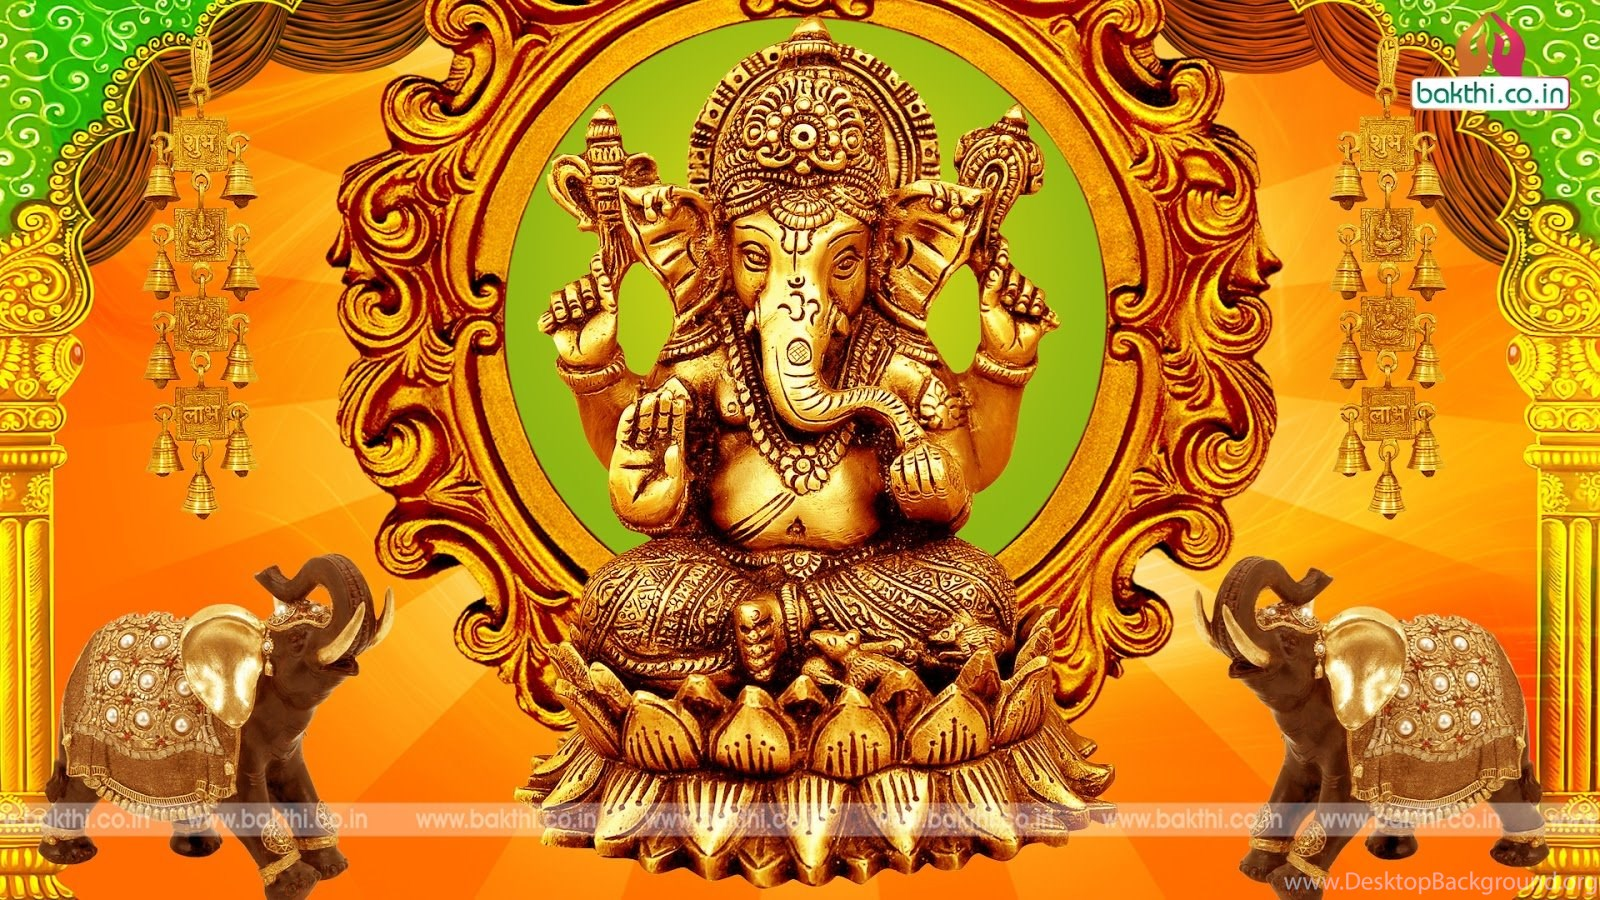 Lord Ganesha Hd Wallpapers With Creative Design Desktop Background